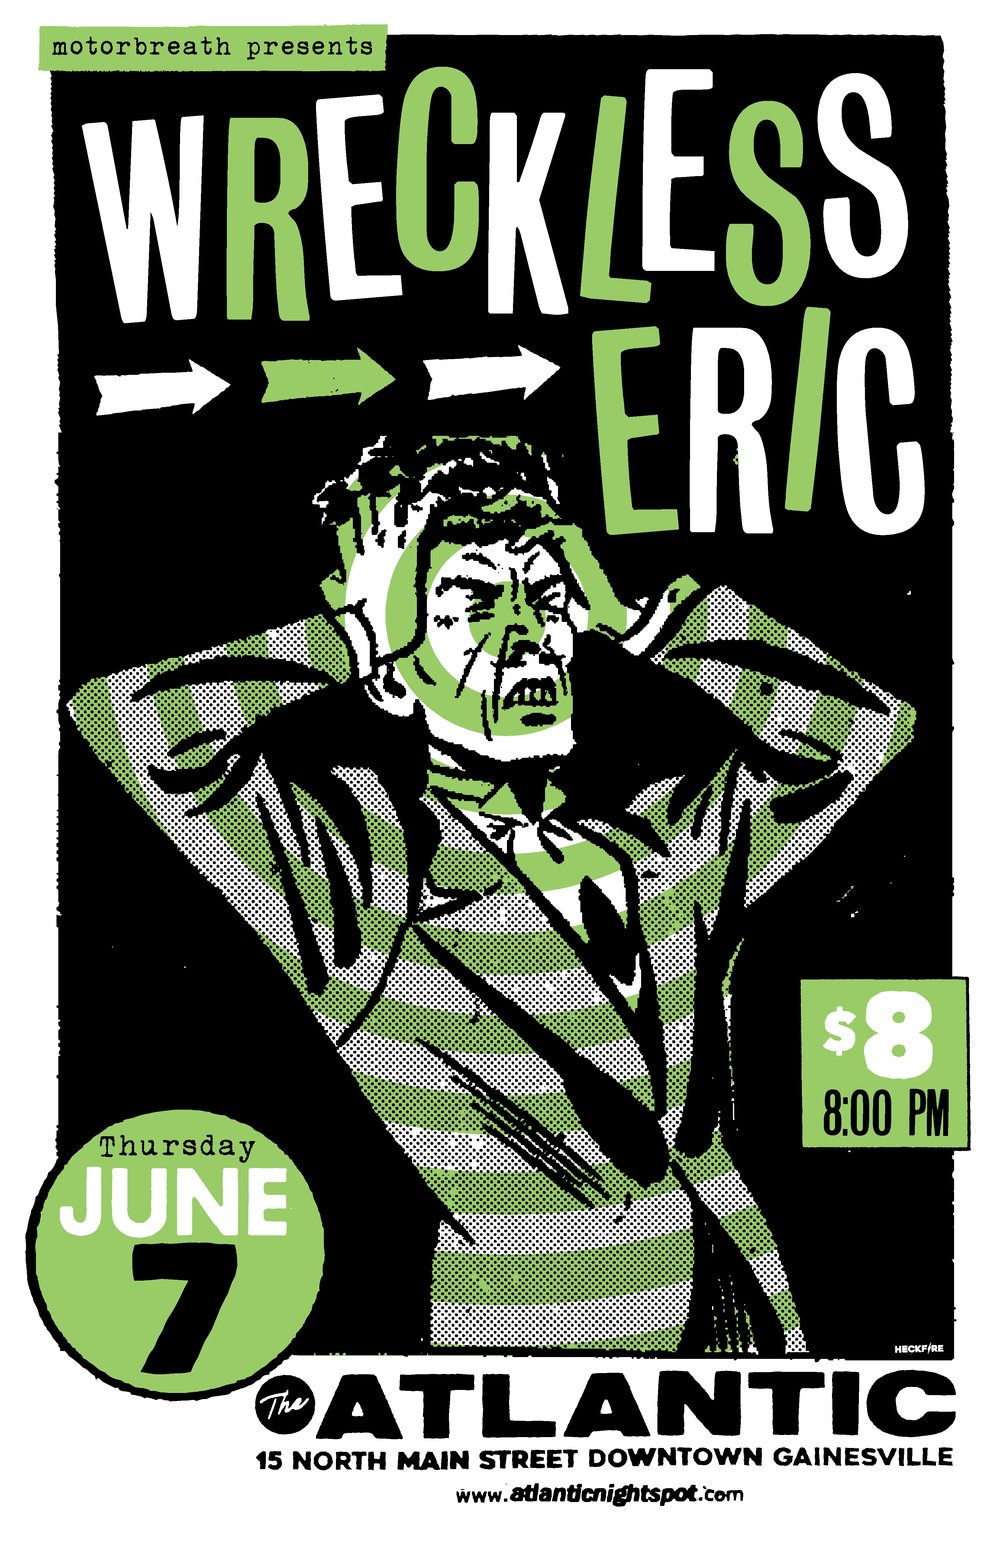 Motorbreath Presents:  Thursday, June 7  Wreckless Eric  + guests TBA  Doors at 8pm, $8